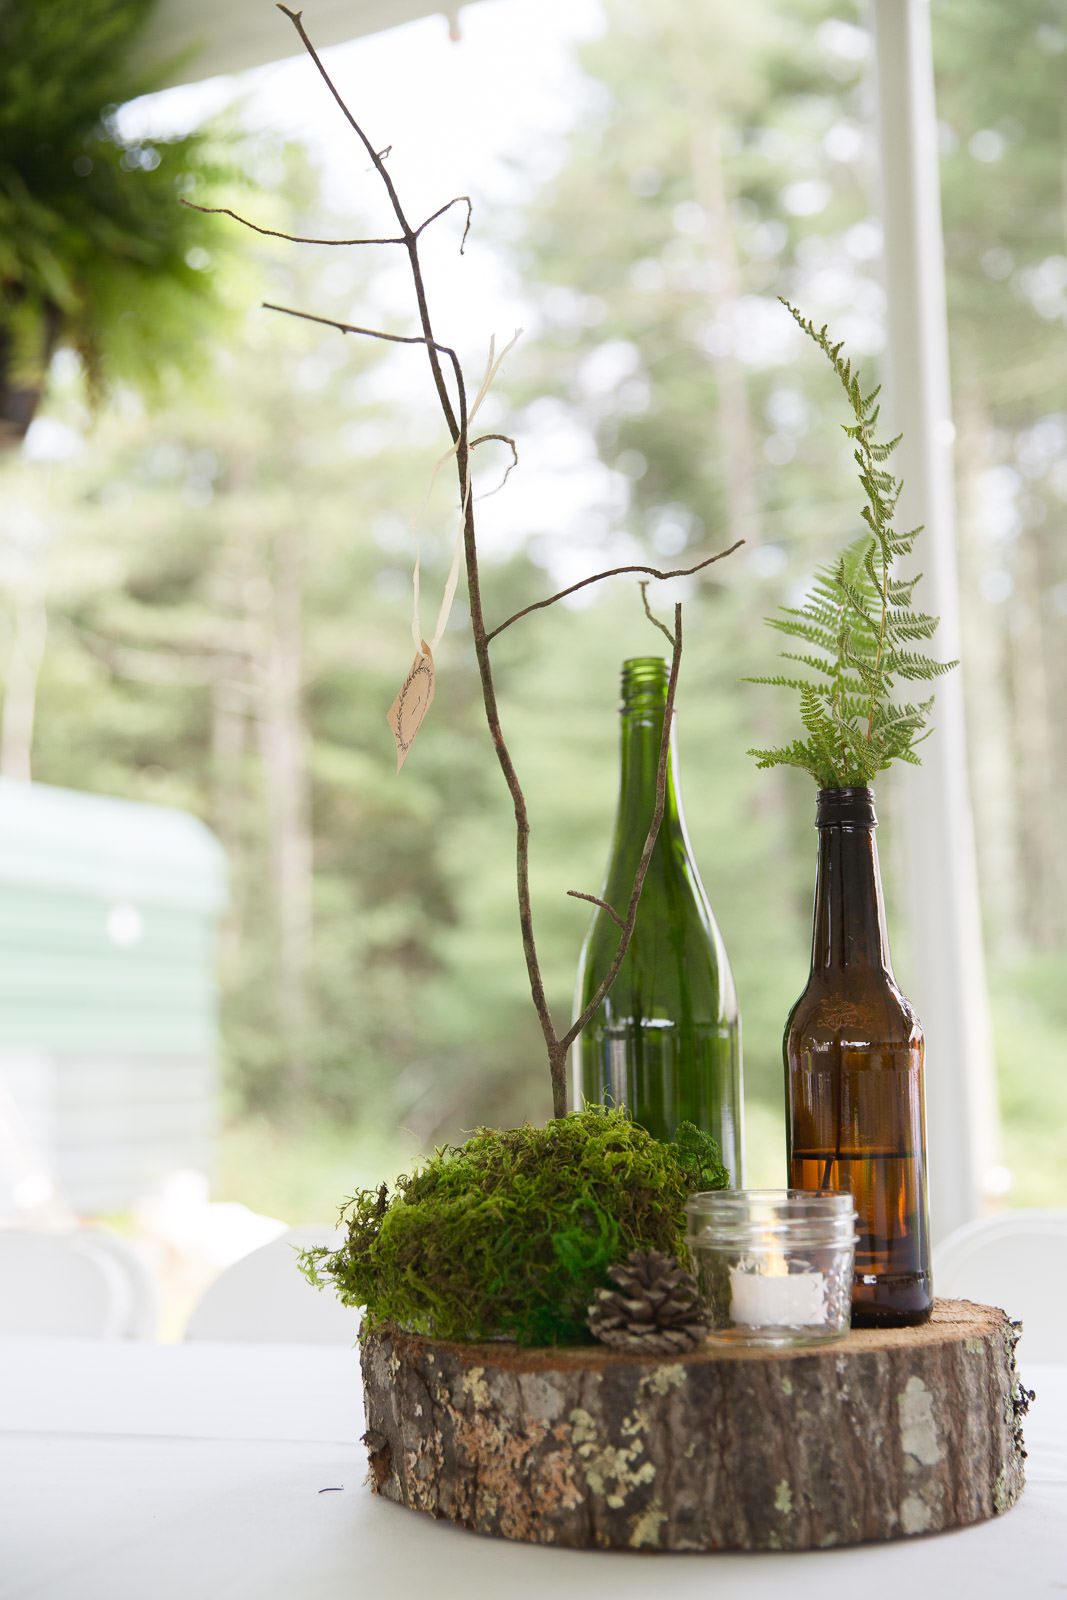 Coventry, Rhode Island, RI, Backyard Wedding, forest, earthy, wedding, tracy jenkins photography, wedding photographer, ri wedding photographer, Rhode Island Wedding photographer, nature center piece, wedding in the woods